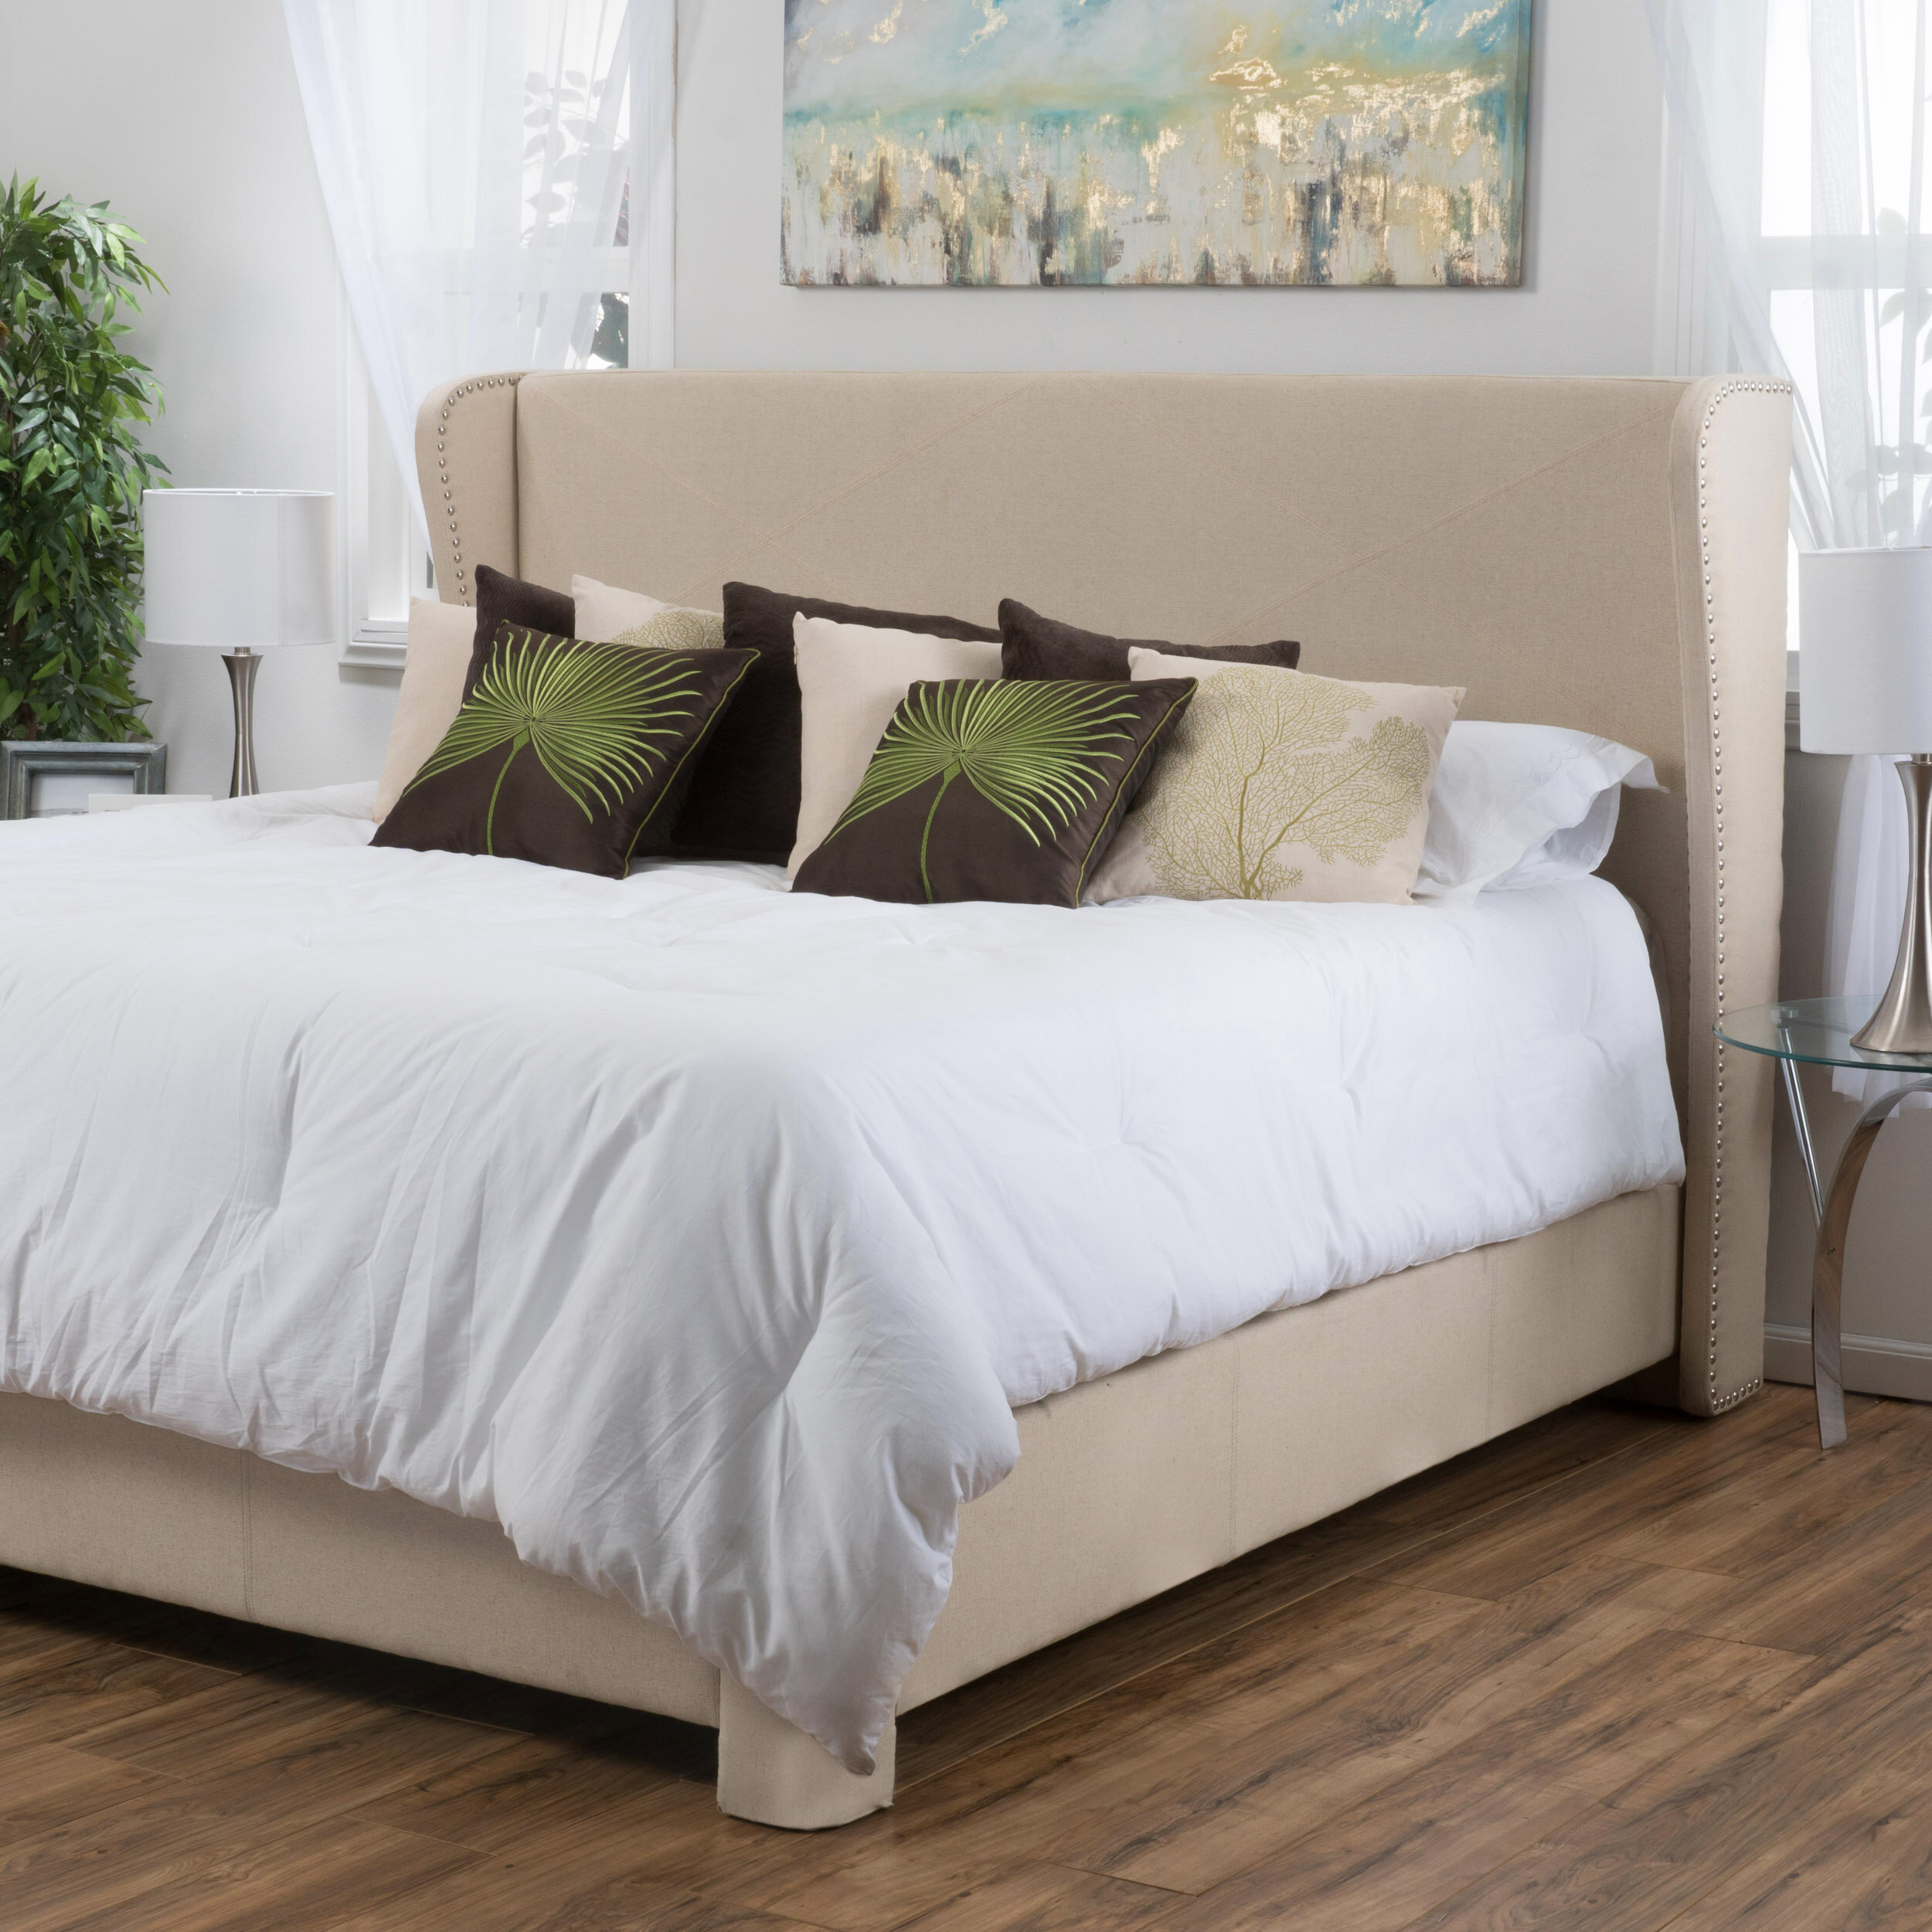 Alcott Hill Bellville King Upholstered Panel Bed U0026 Reviews | Wayfair